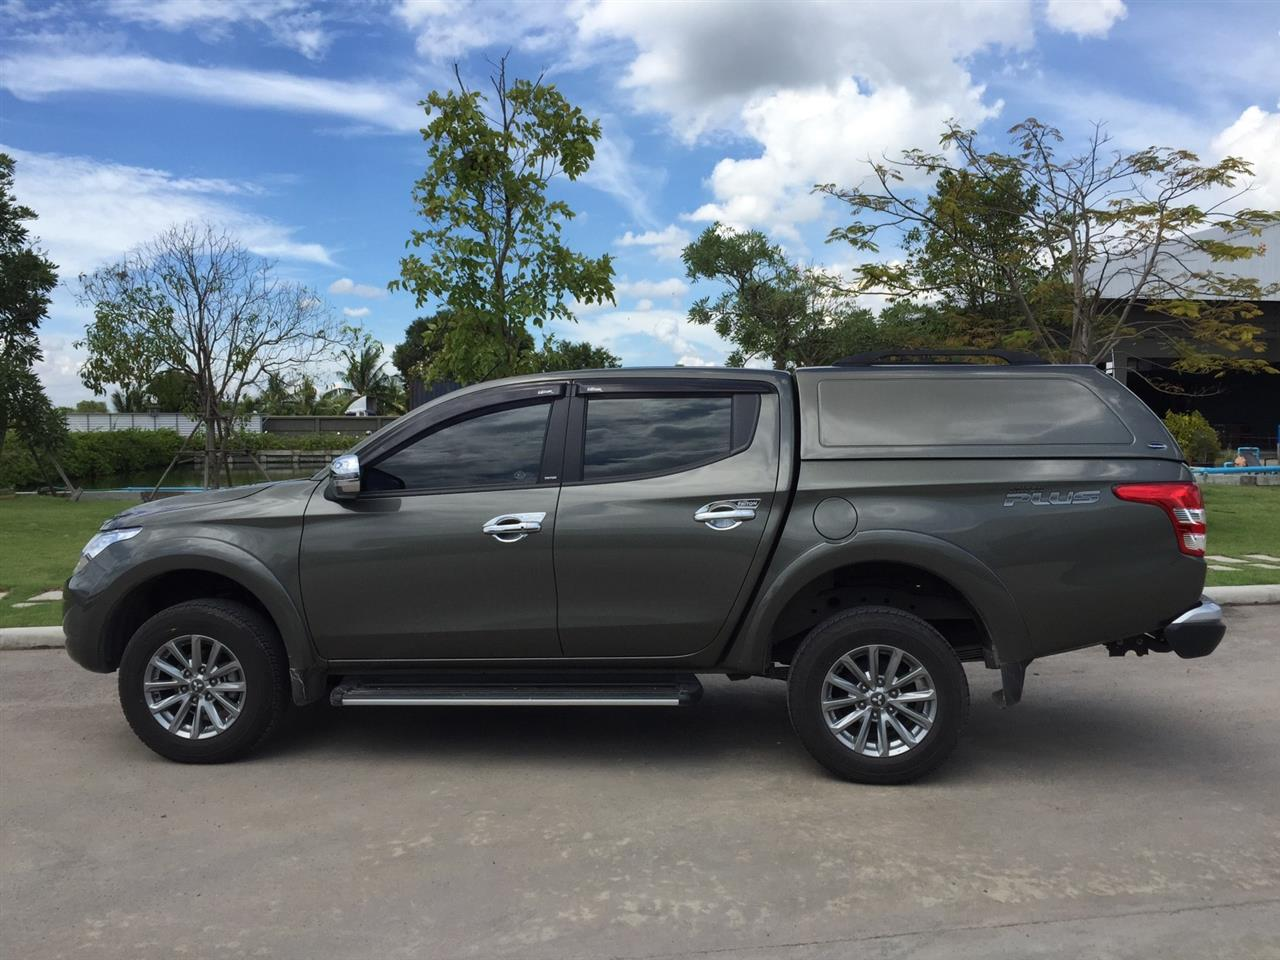 fk503n hard top sline gls mitsubishi l200 fiat fullback double cab 2016 sans vitres noir. Black Bedroom Furniture Sets. Home Design Ideas